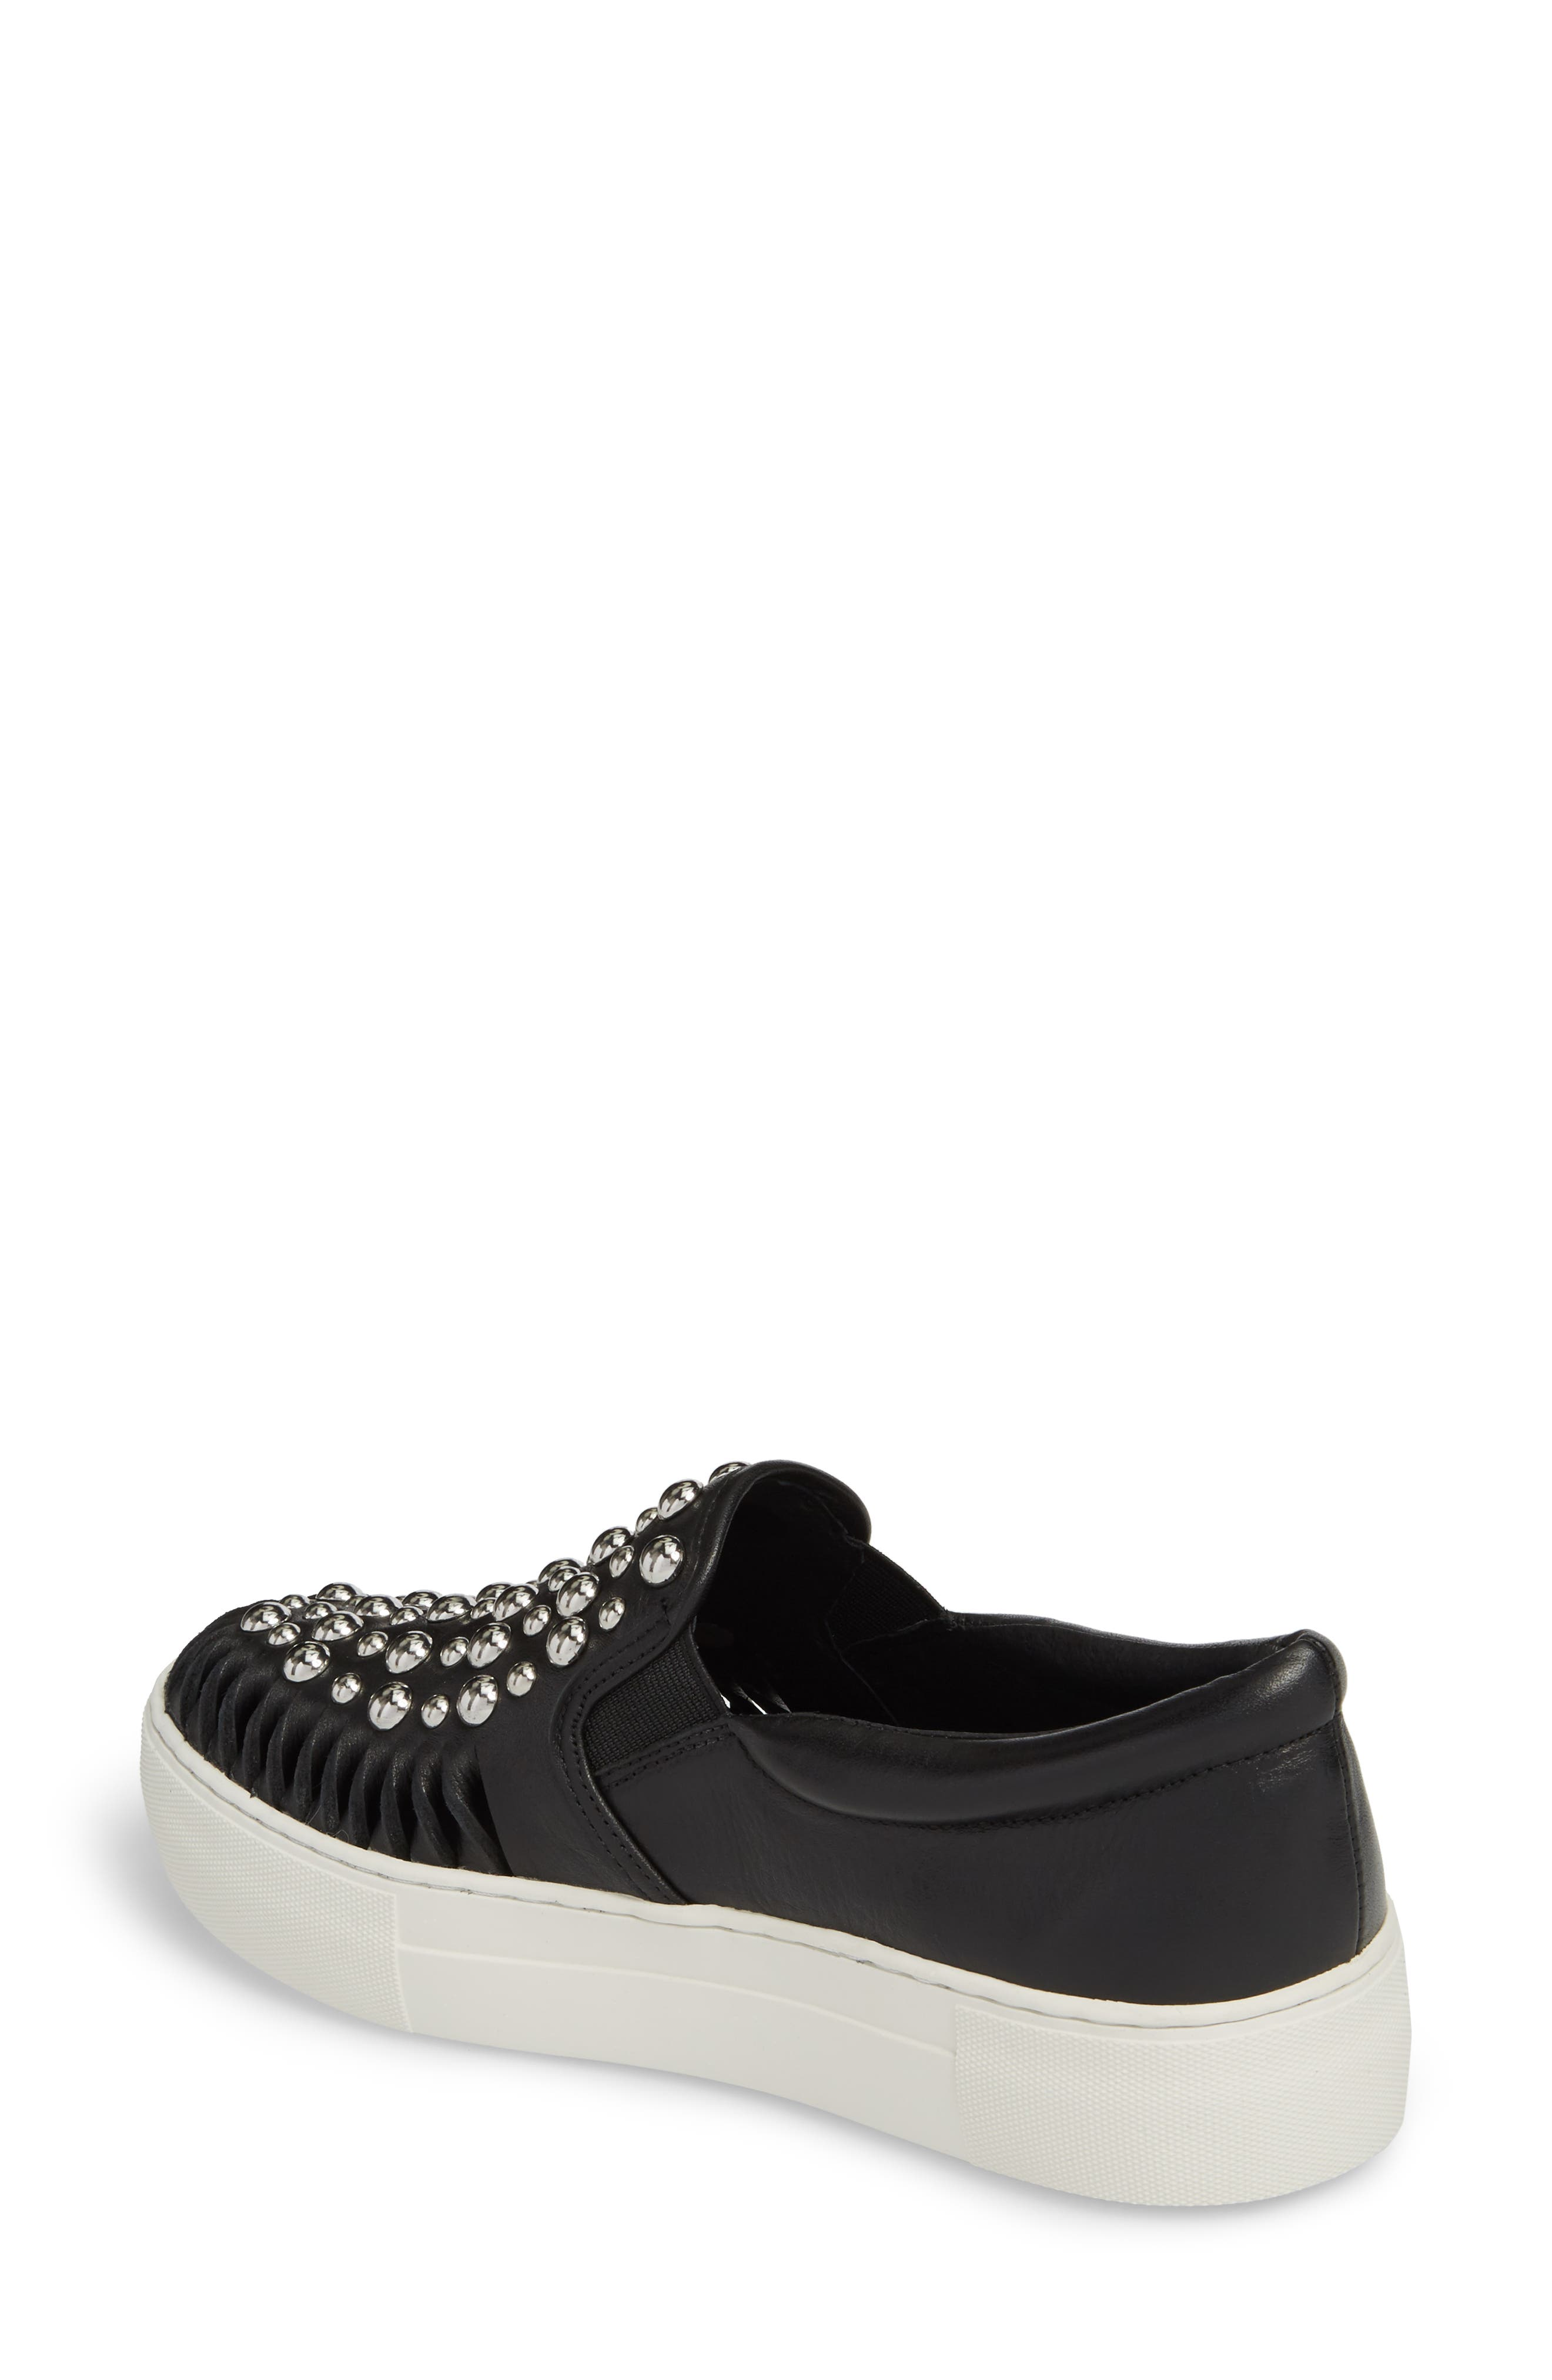 AZT Studded Slip-On Sneaker,                             Alternate thumbnail 2, color,                             015